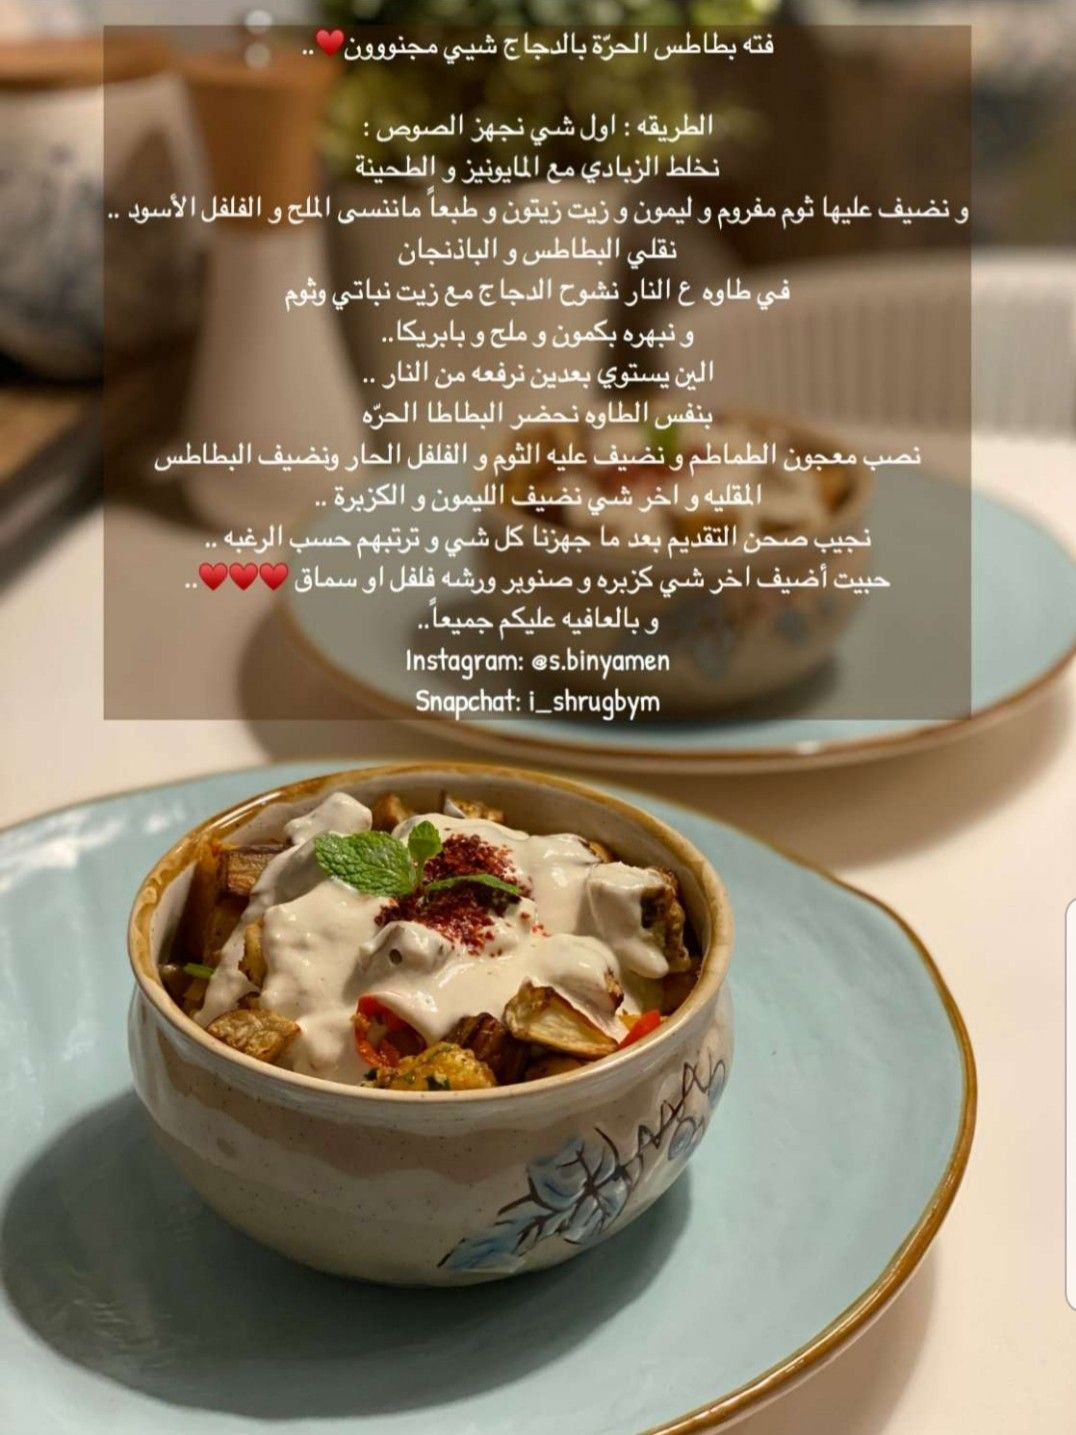 Pin By Hnoreen On Food طبخ Cooking Recipes Desserts Food Drinks Dessert Food Receipes